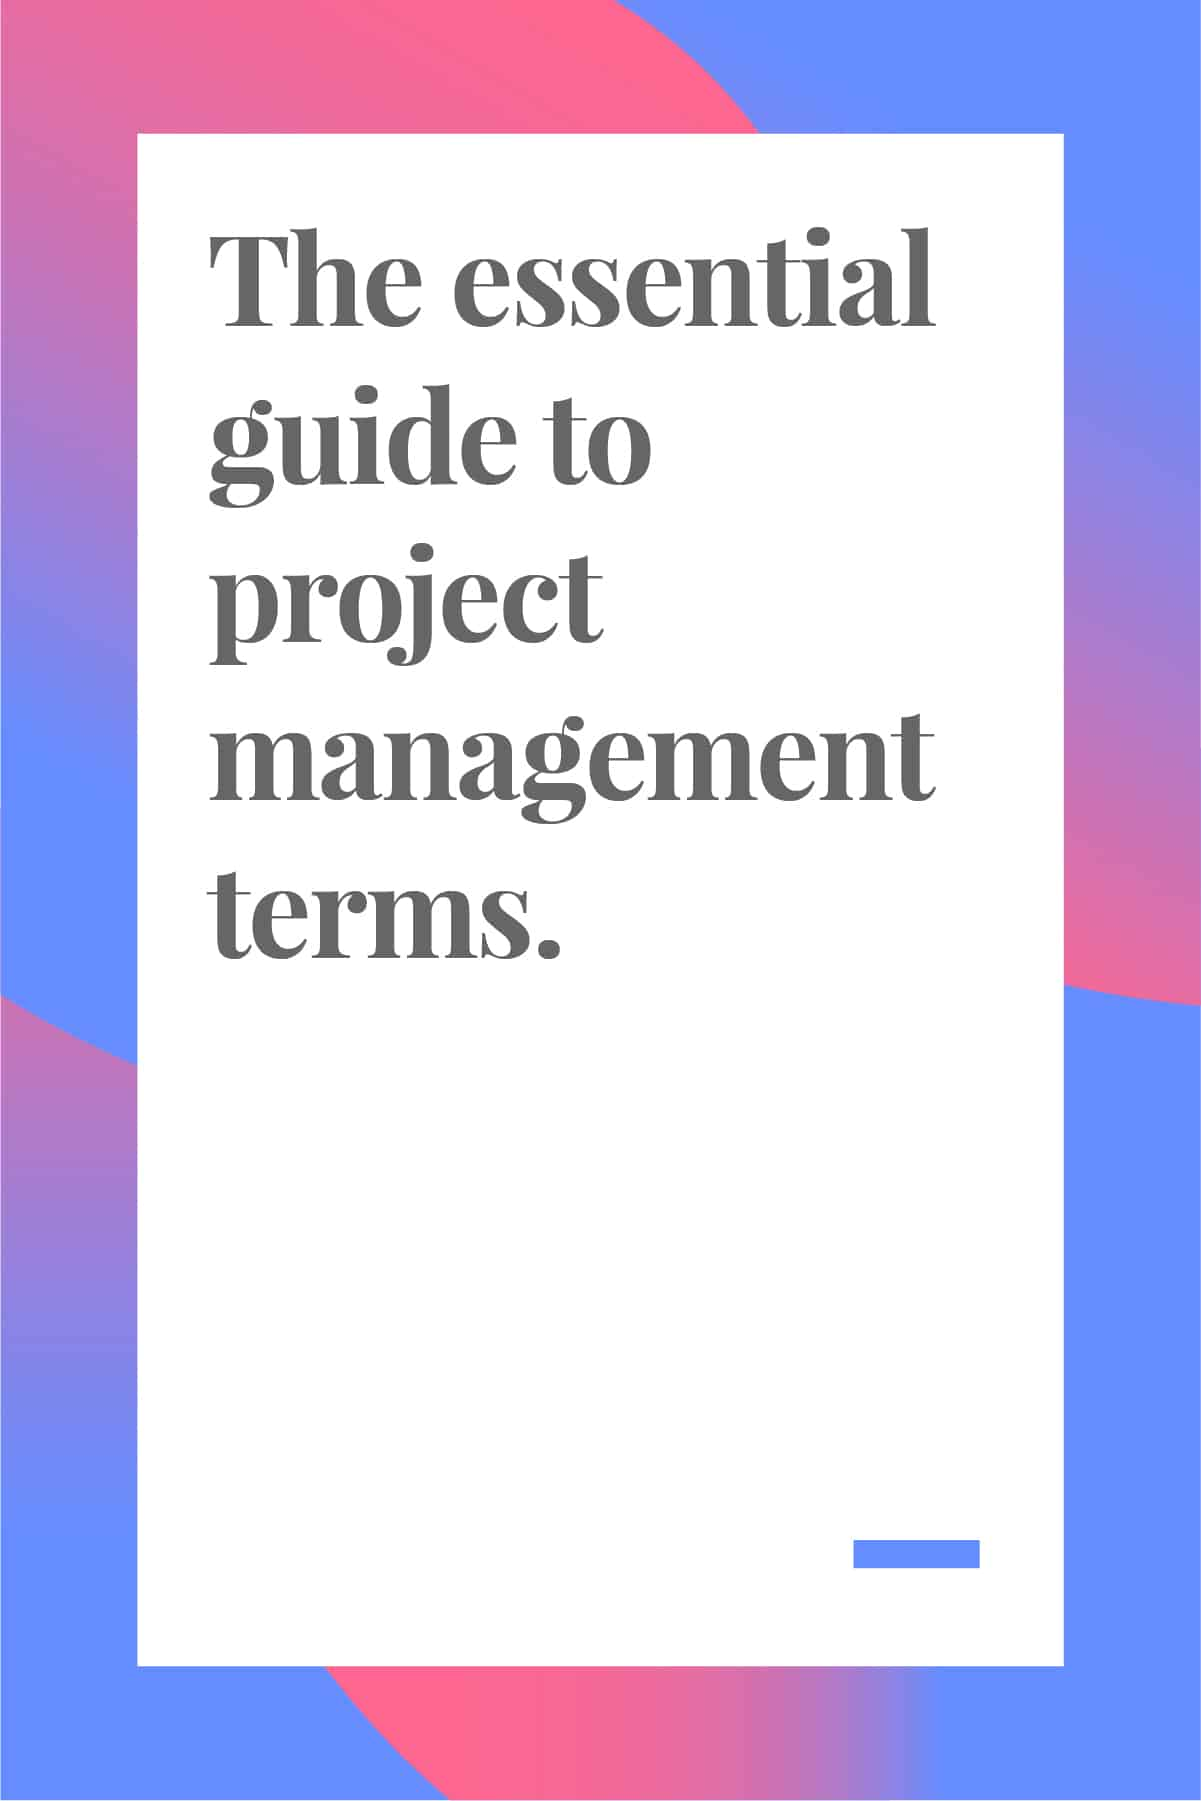 You'll look like a pro when you know these project management terms. Pin now and read later. #projectmanagement